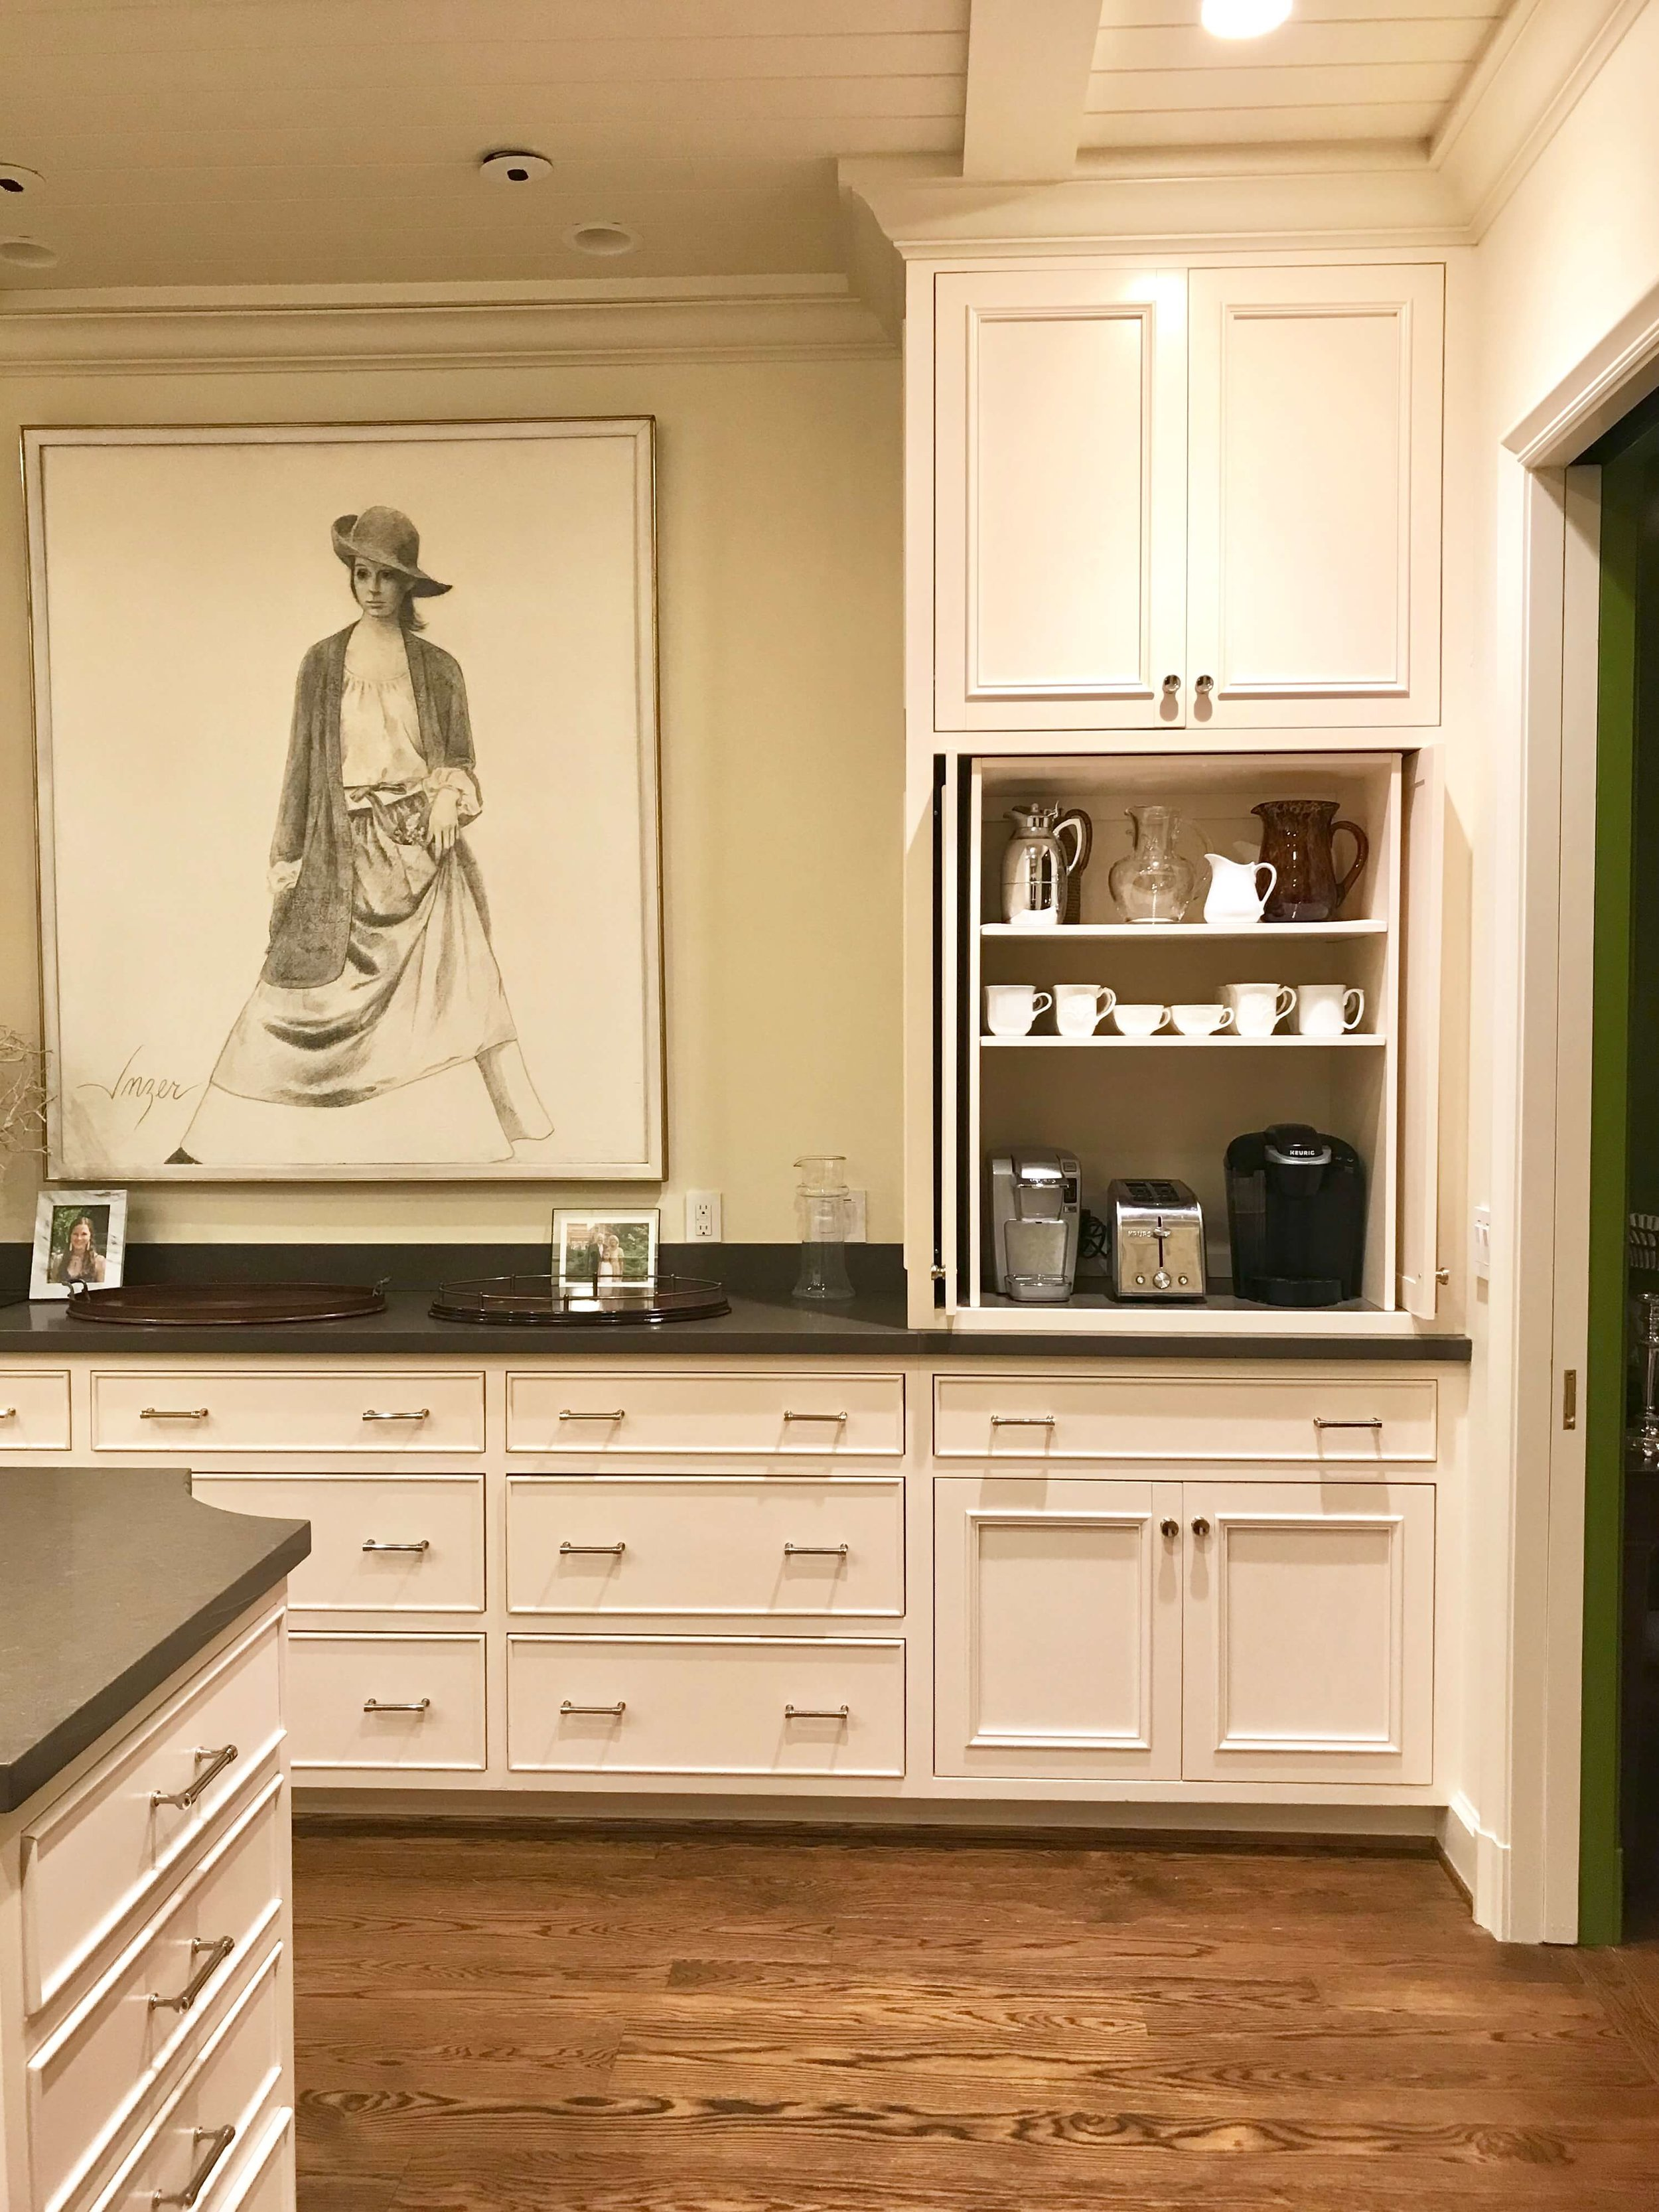 A staged kitchen and coffee station.